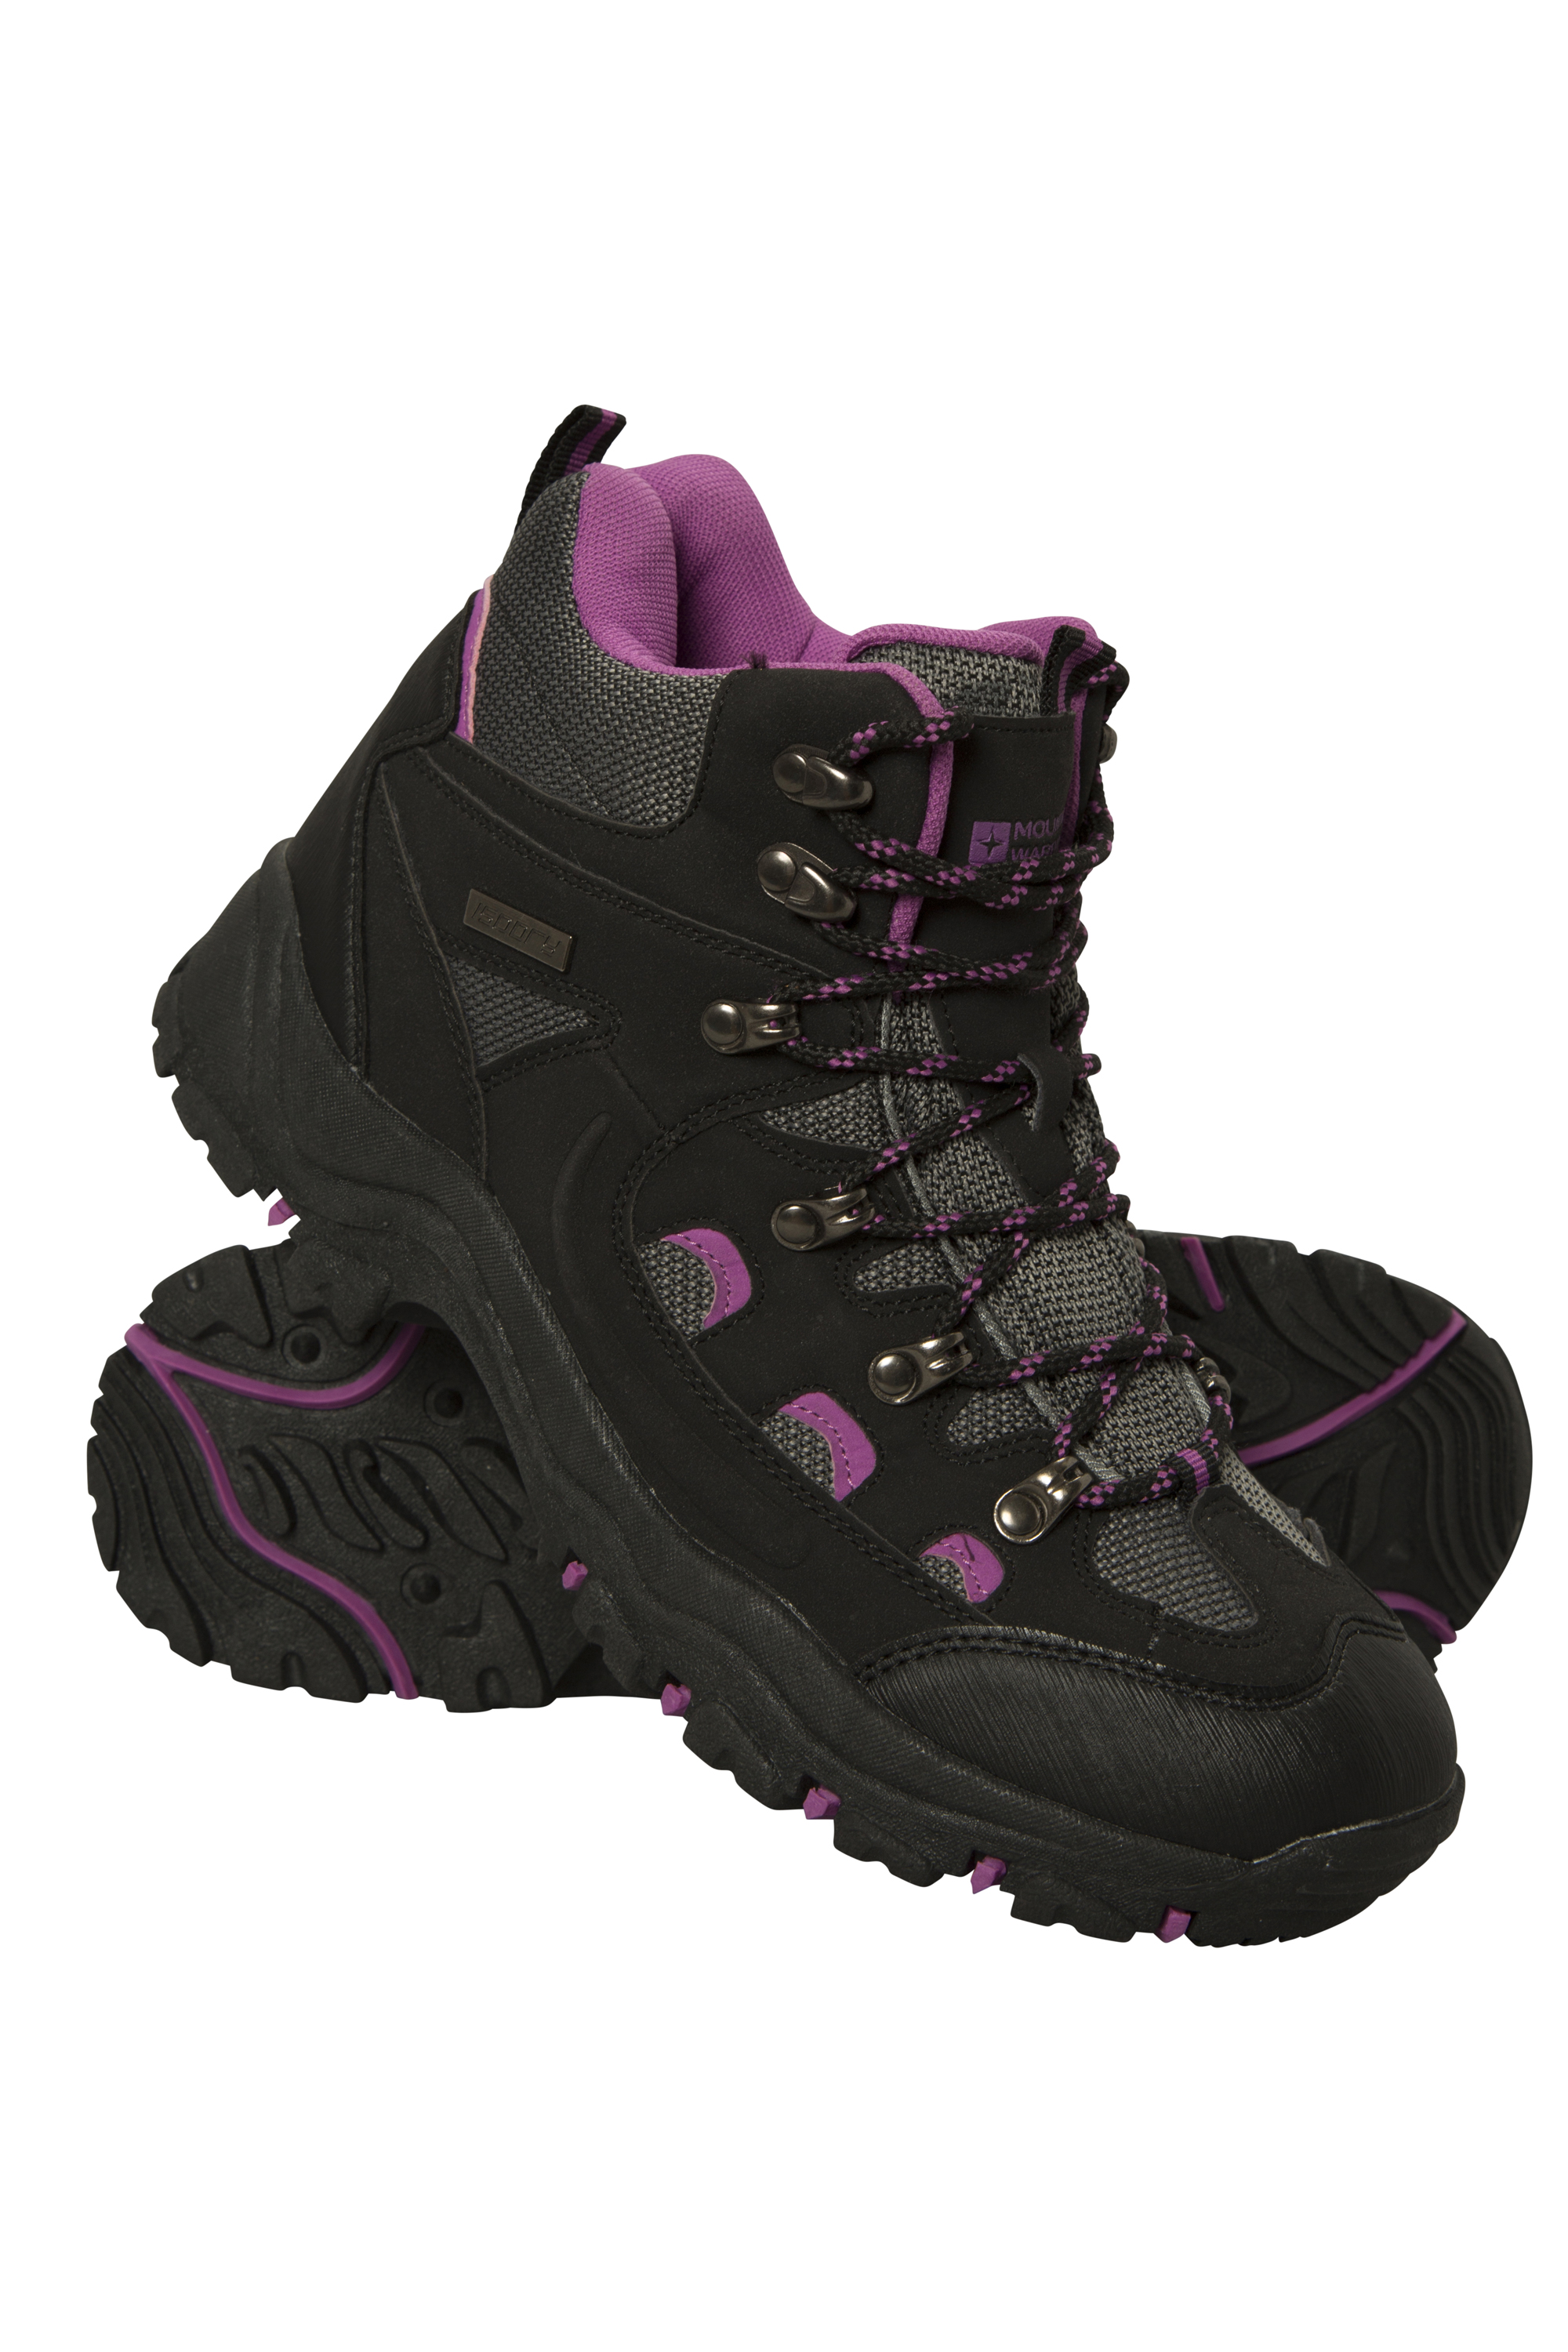 Comfortable walking boots that prevents ankle injury